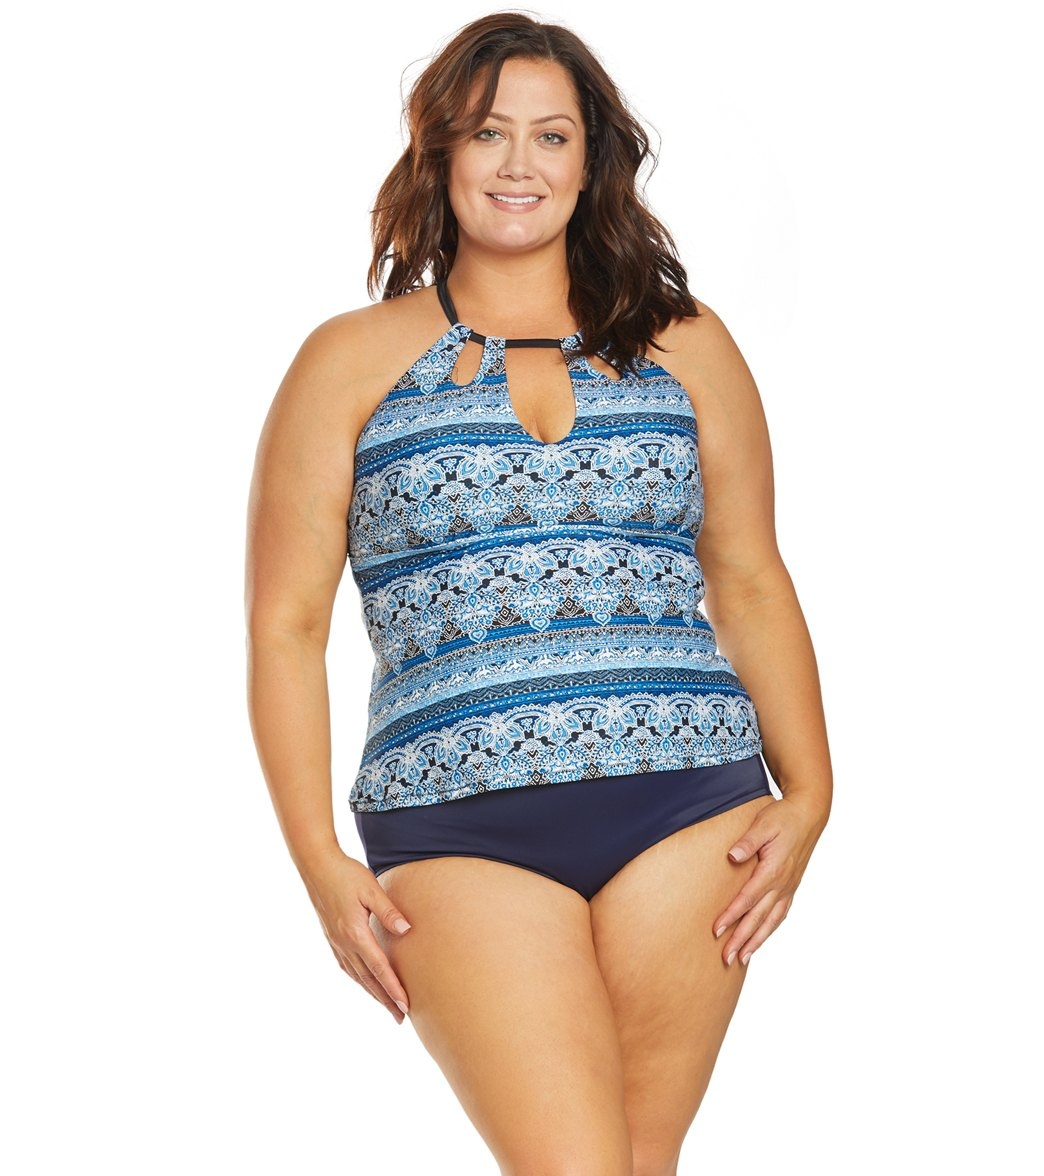 2dce284a4f3 Raisins Plus Size Byron Bay Rosalie Tankini Top at SwimOutlet.com - Free  Shipping